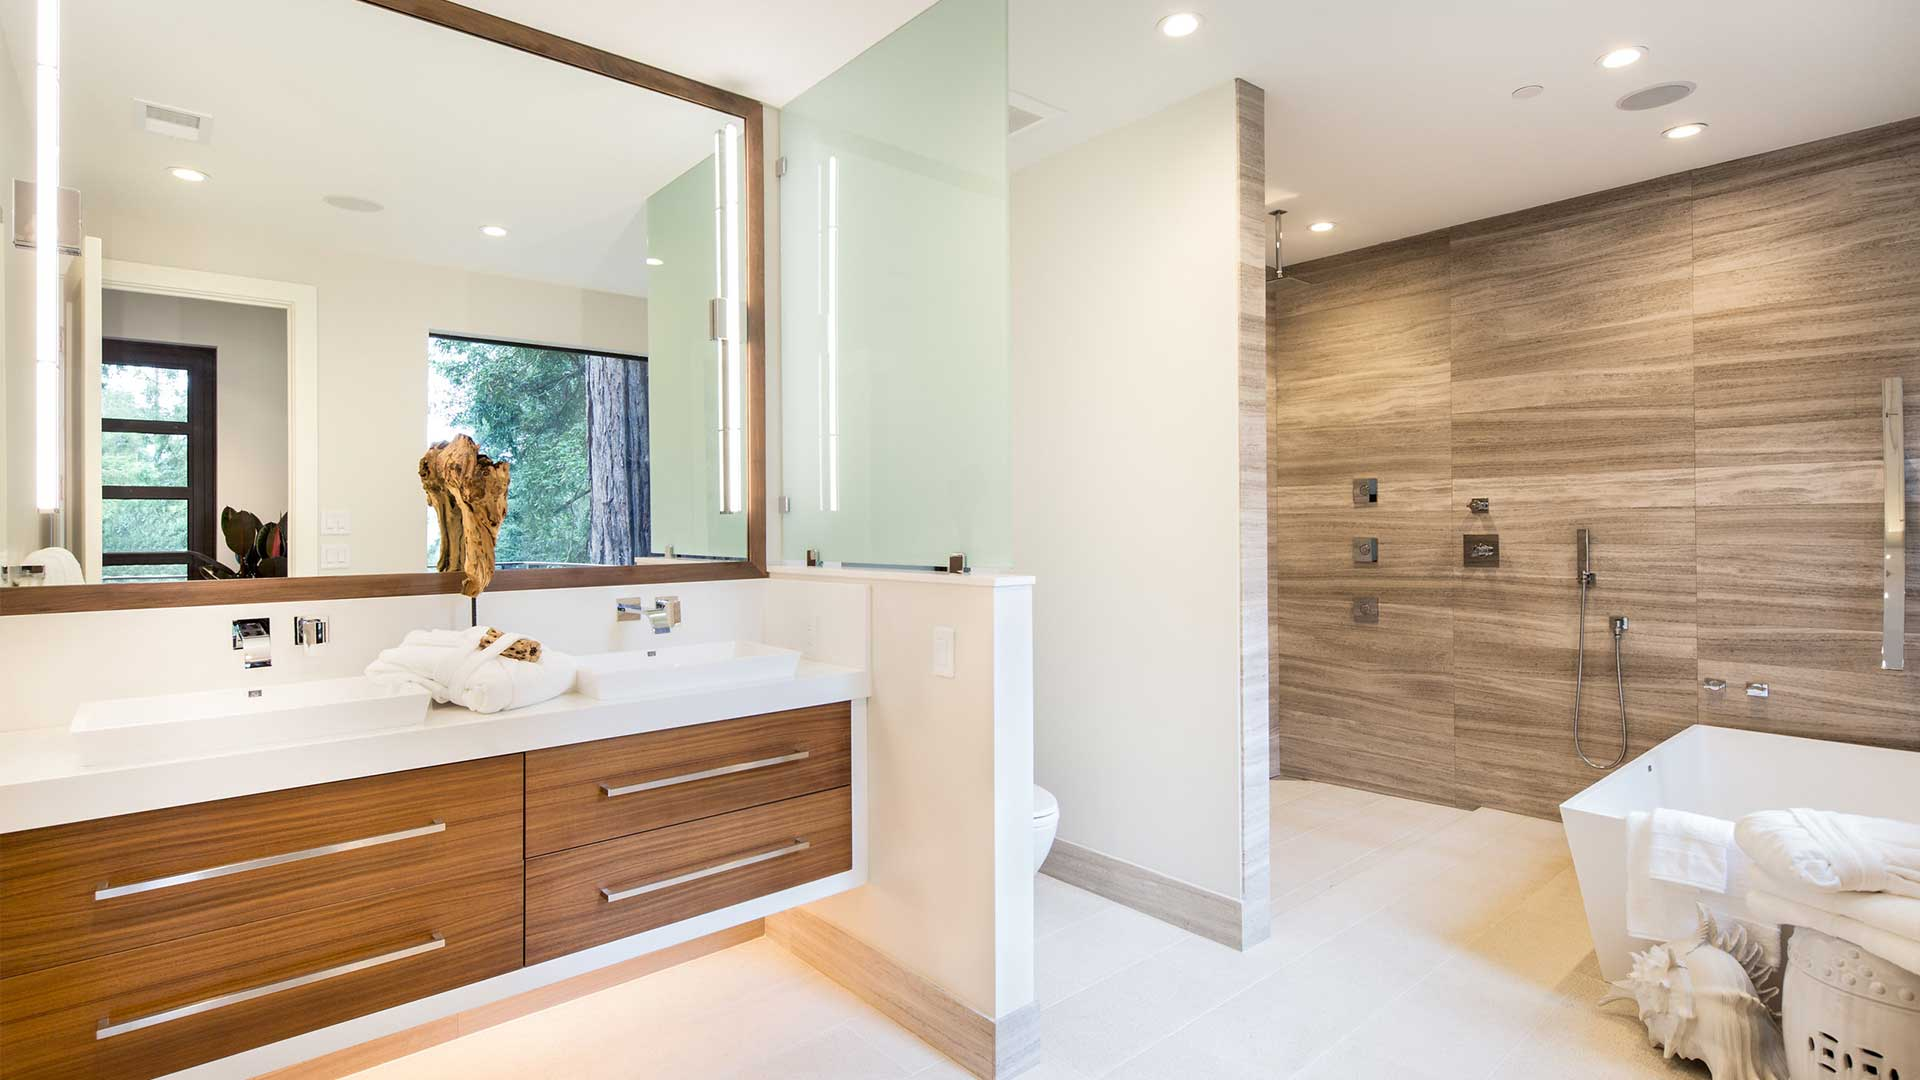 San Francisco Kitchen Remodeling, Bathroom Remodeling and Home Additions